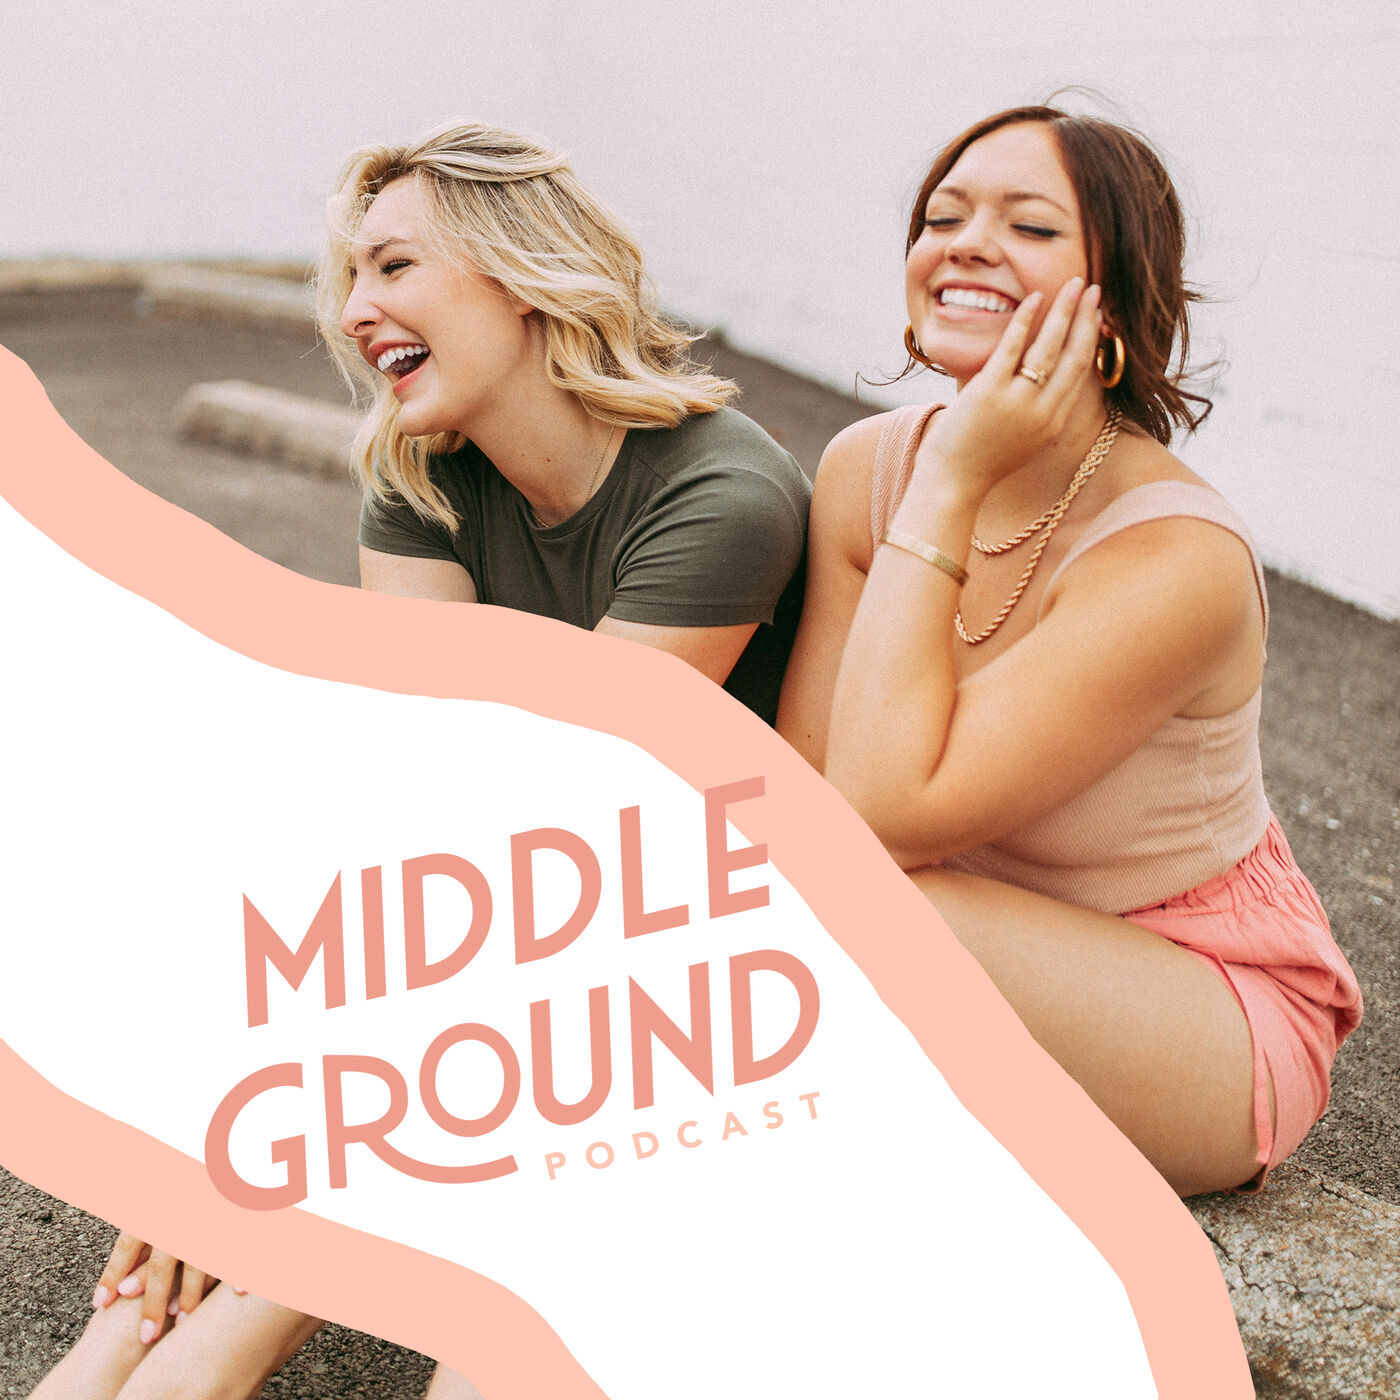 Middle Ground Podcast